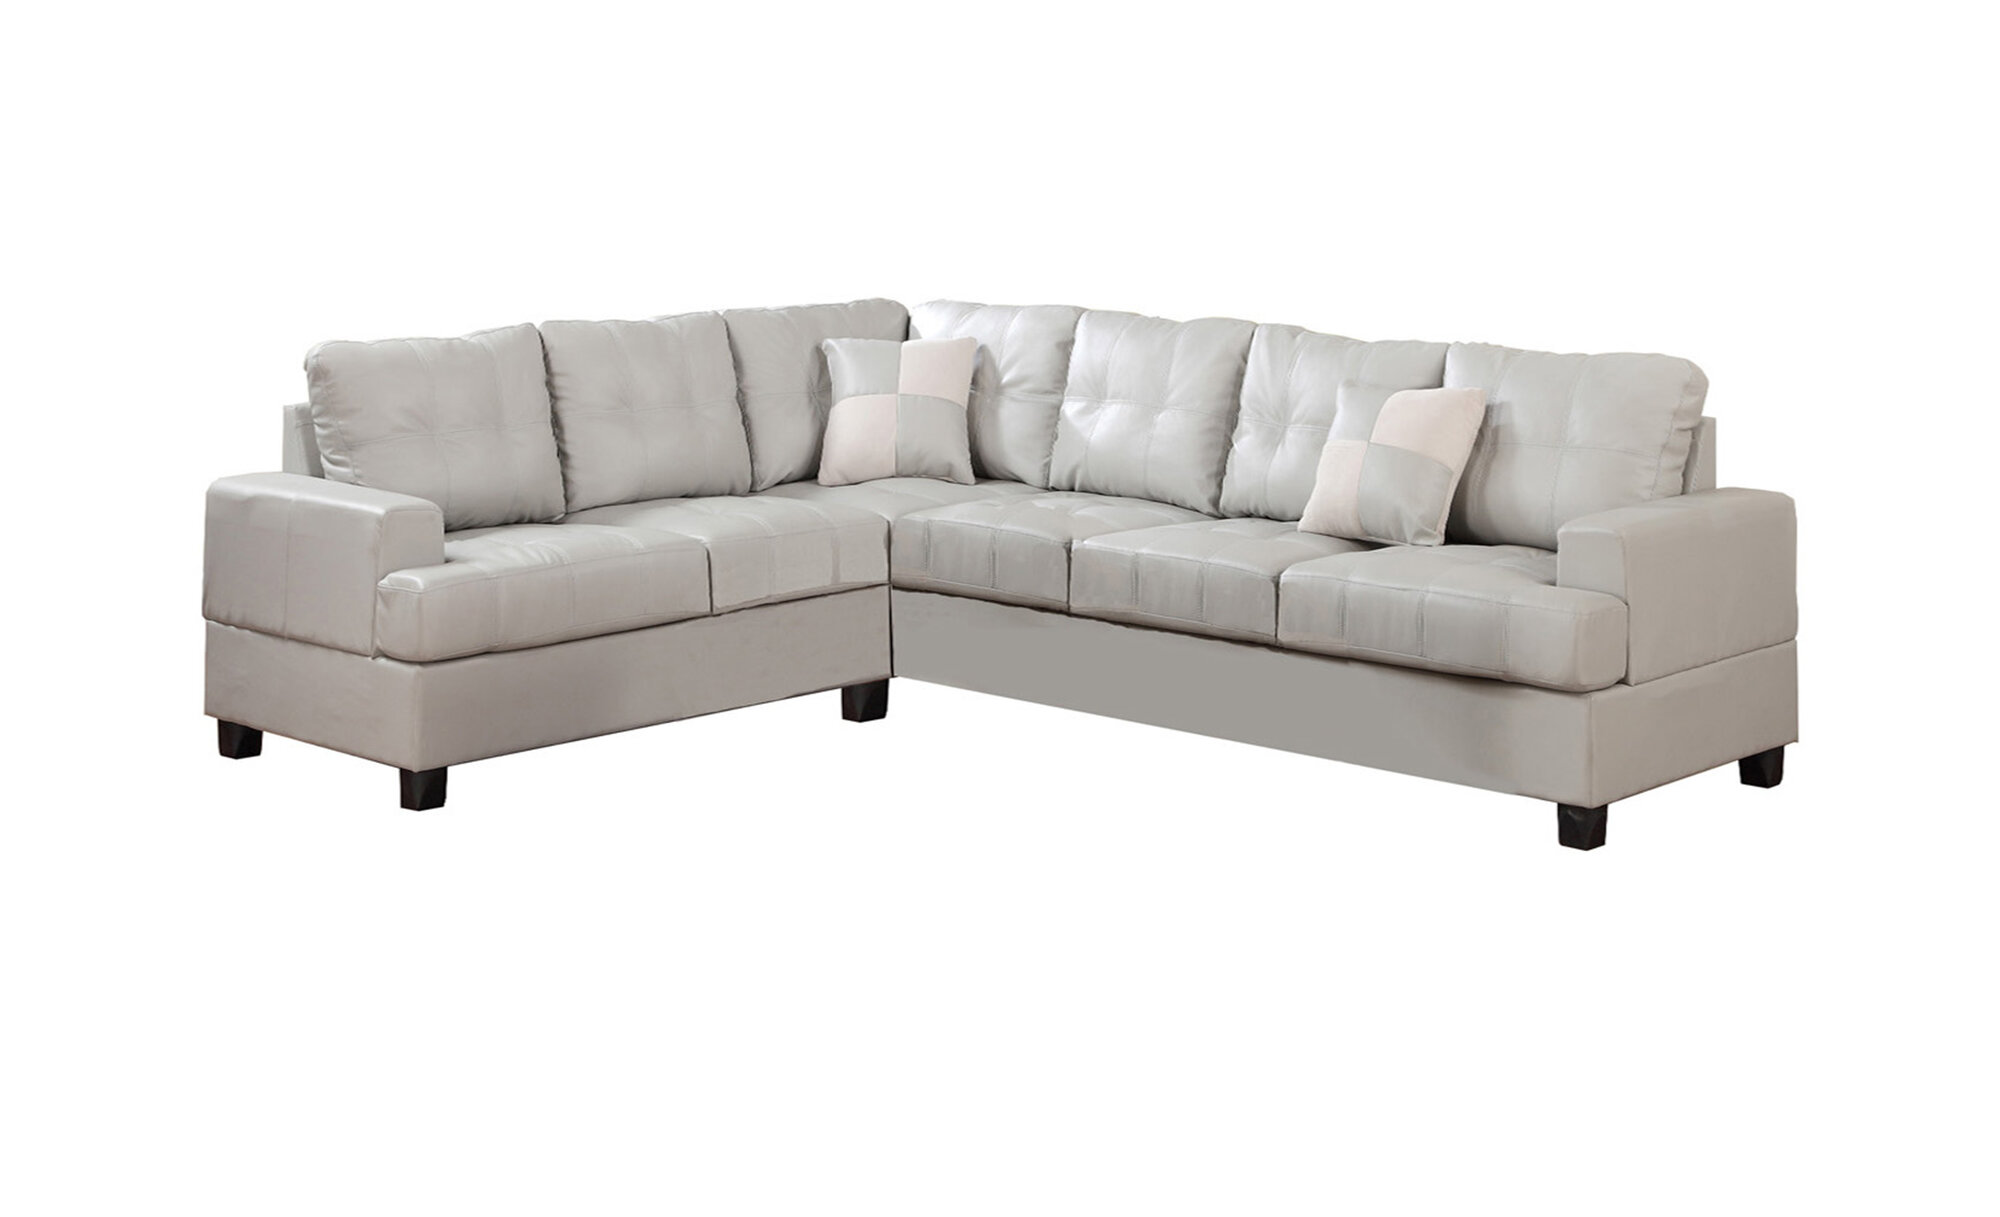 Poundex Bobkona Karen Bonded Leather Reversible Sectional